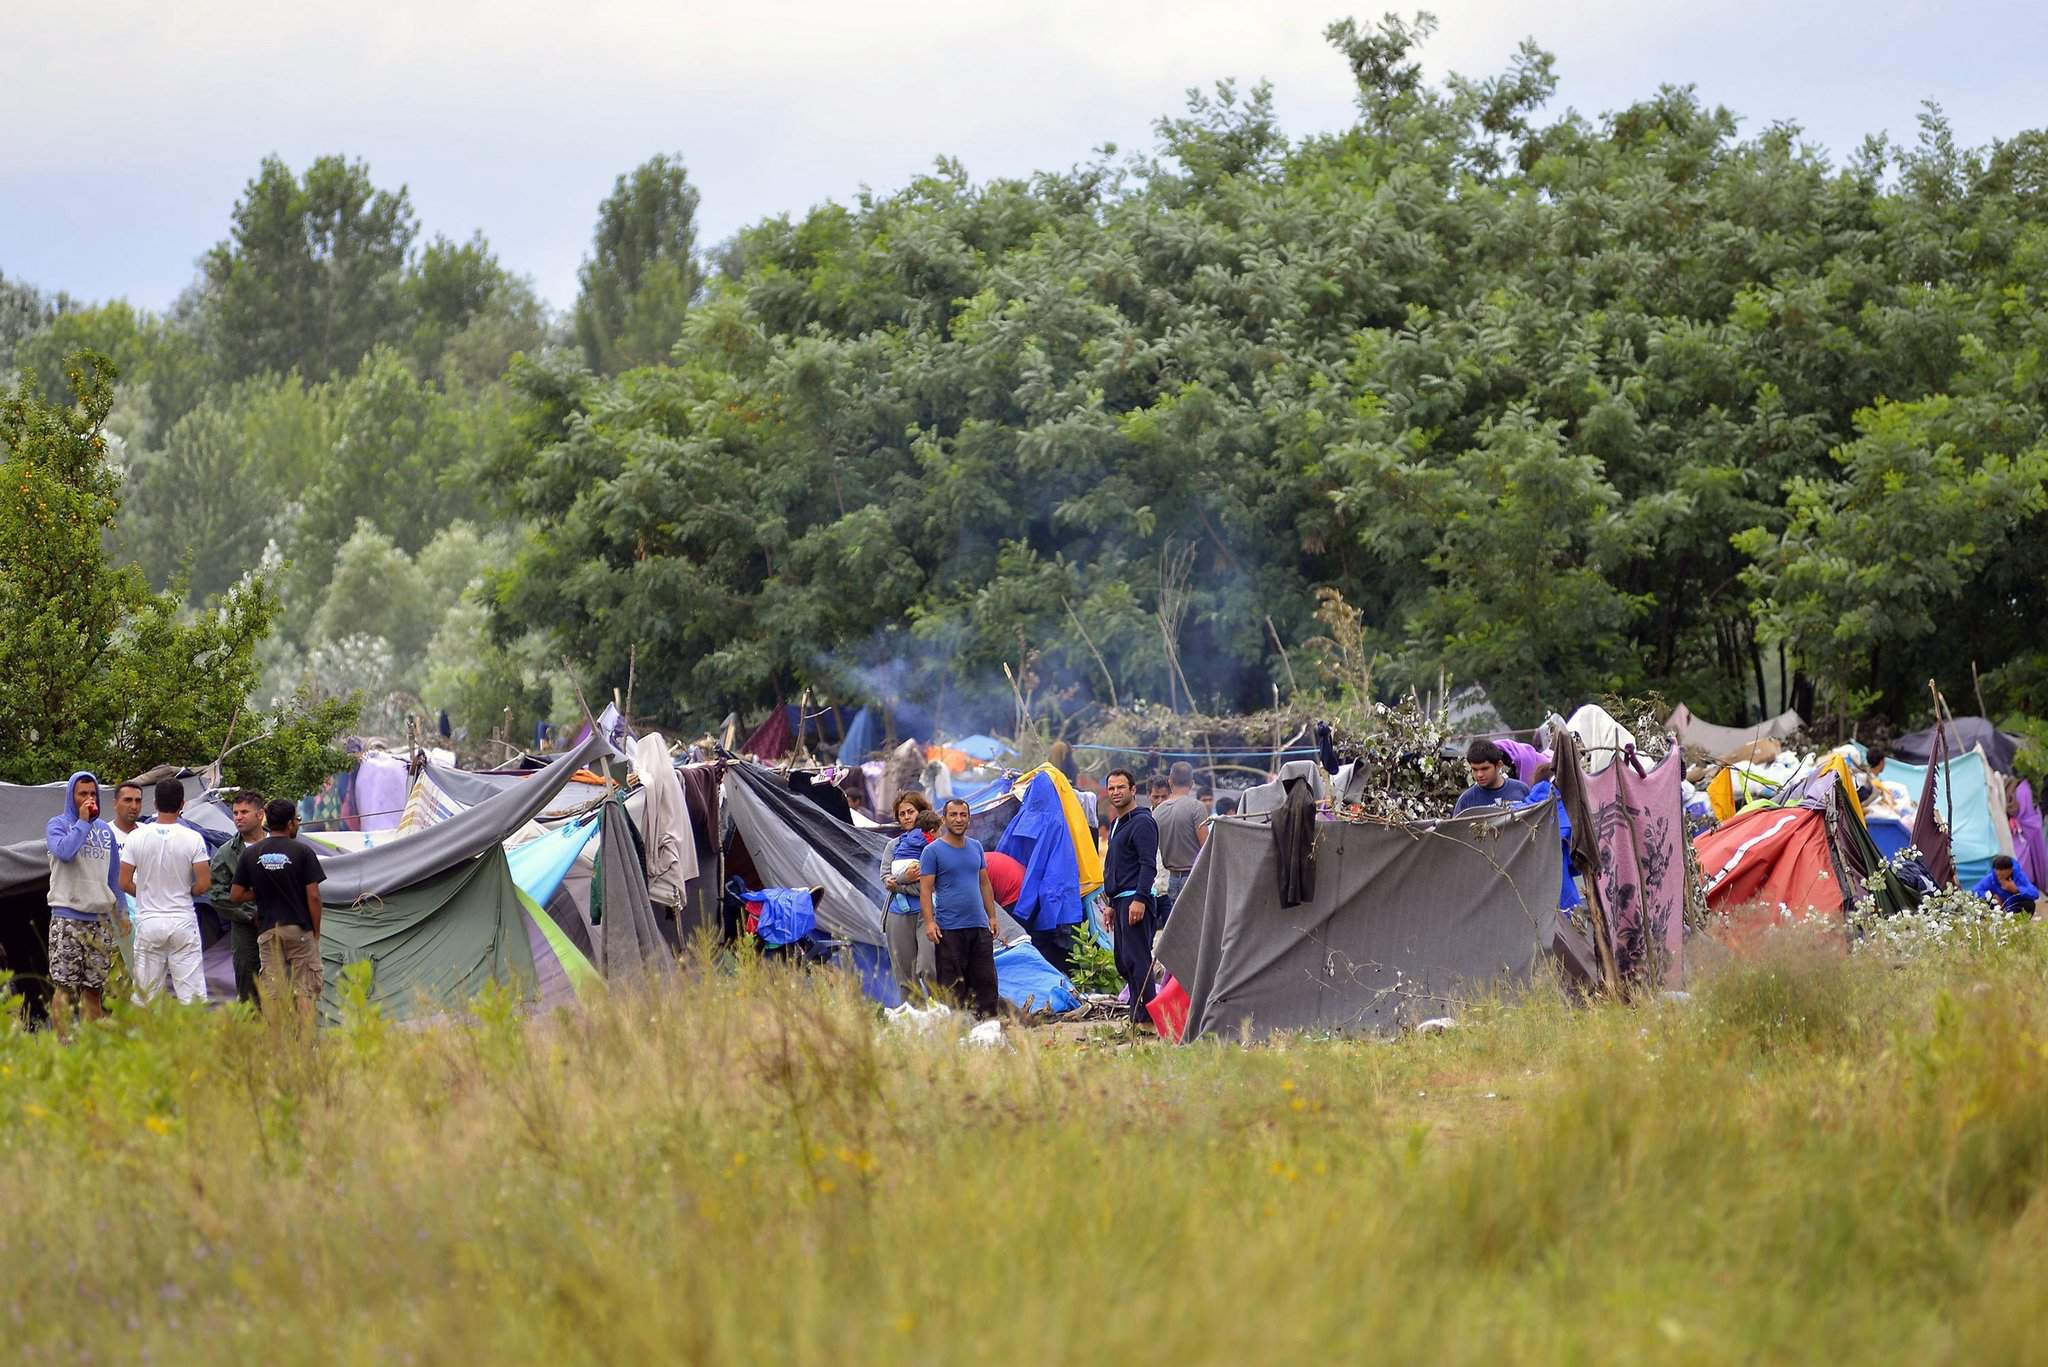 Hungarian minister correlates greater danger of terrorism with higher migrant numbers